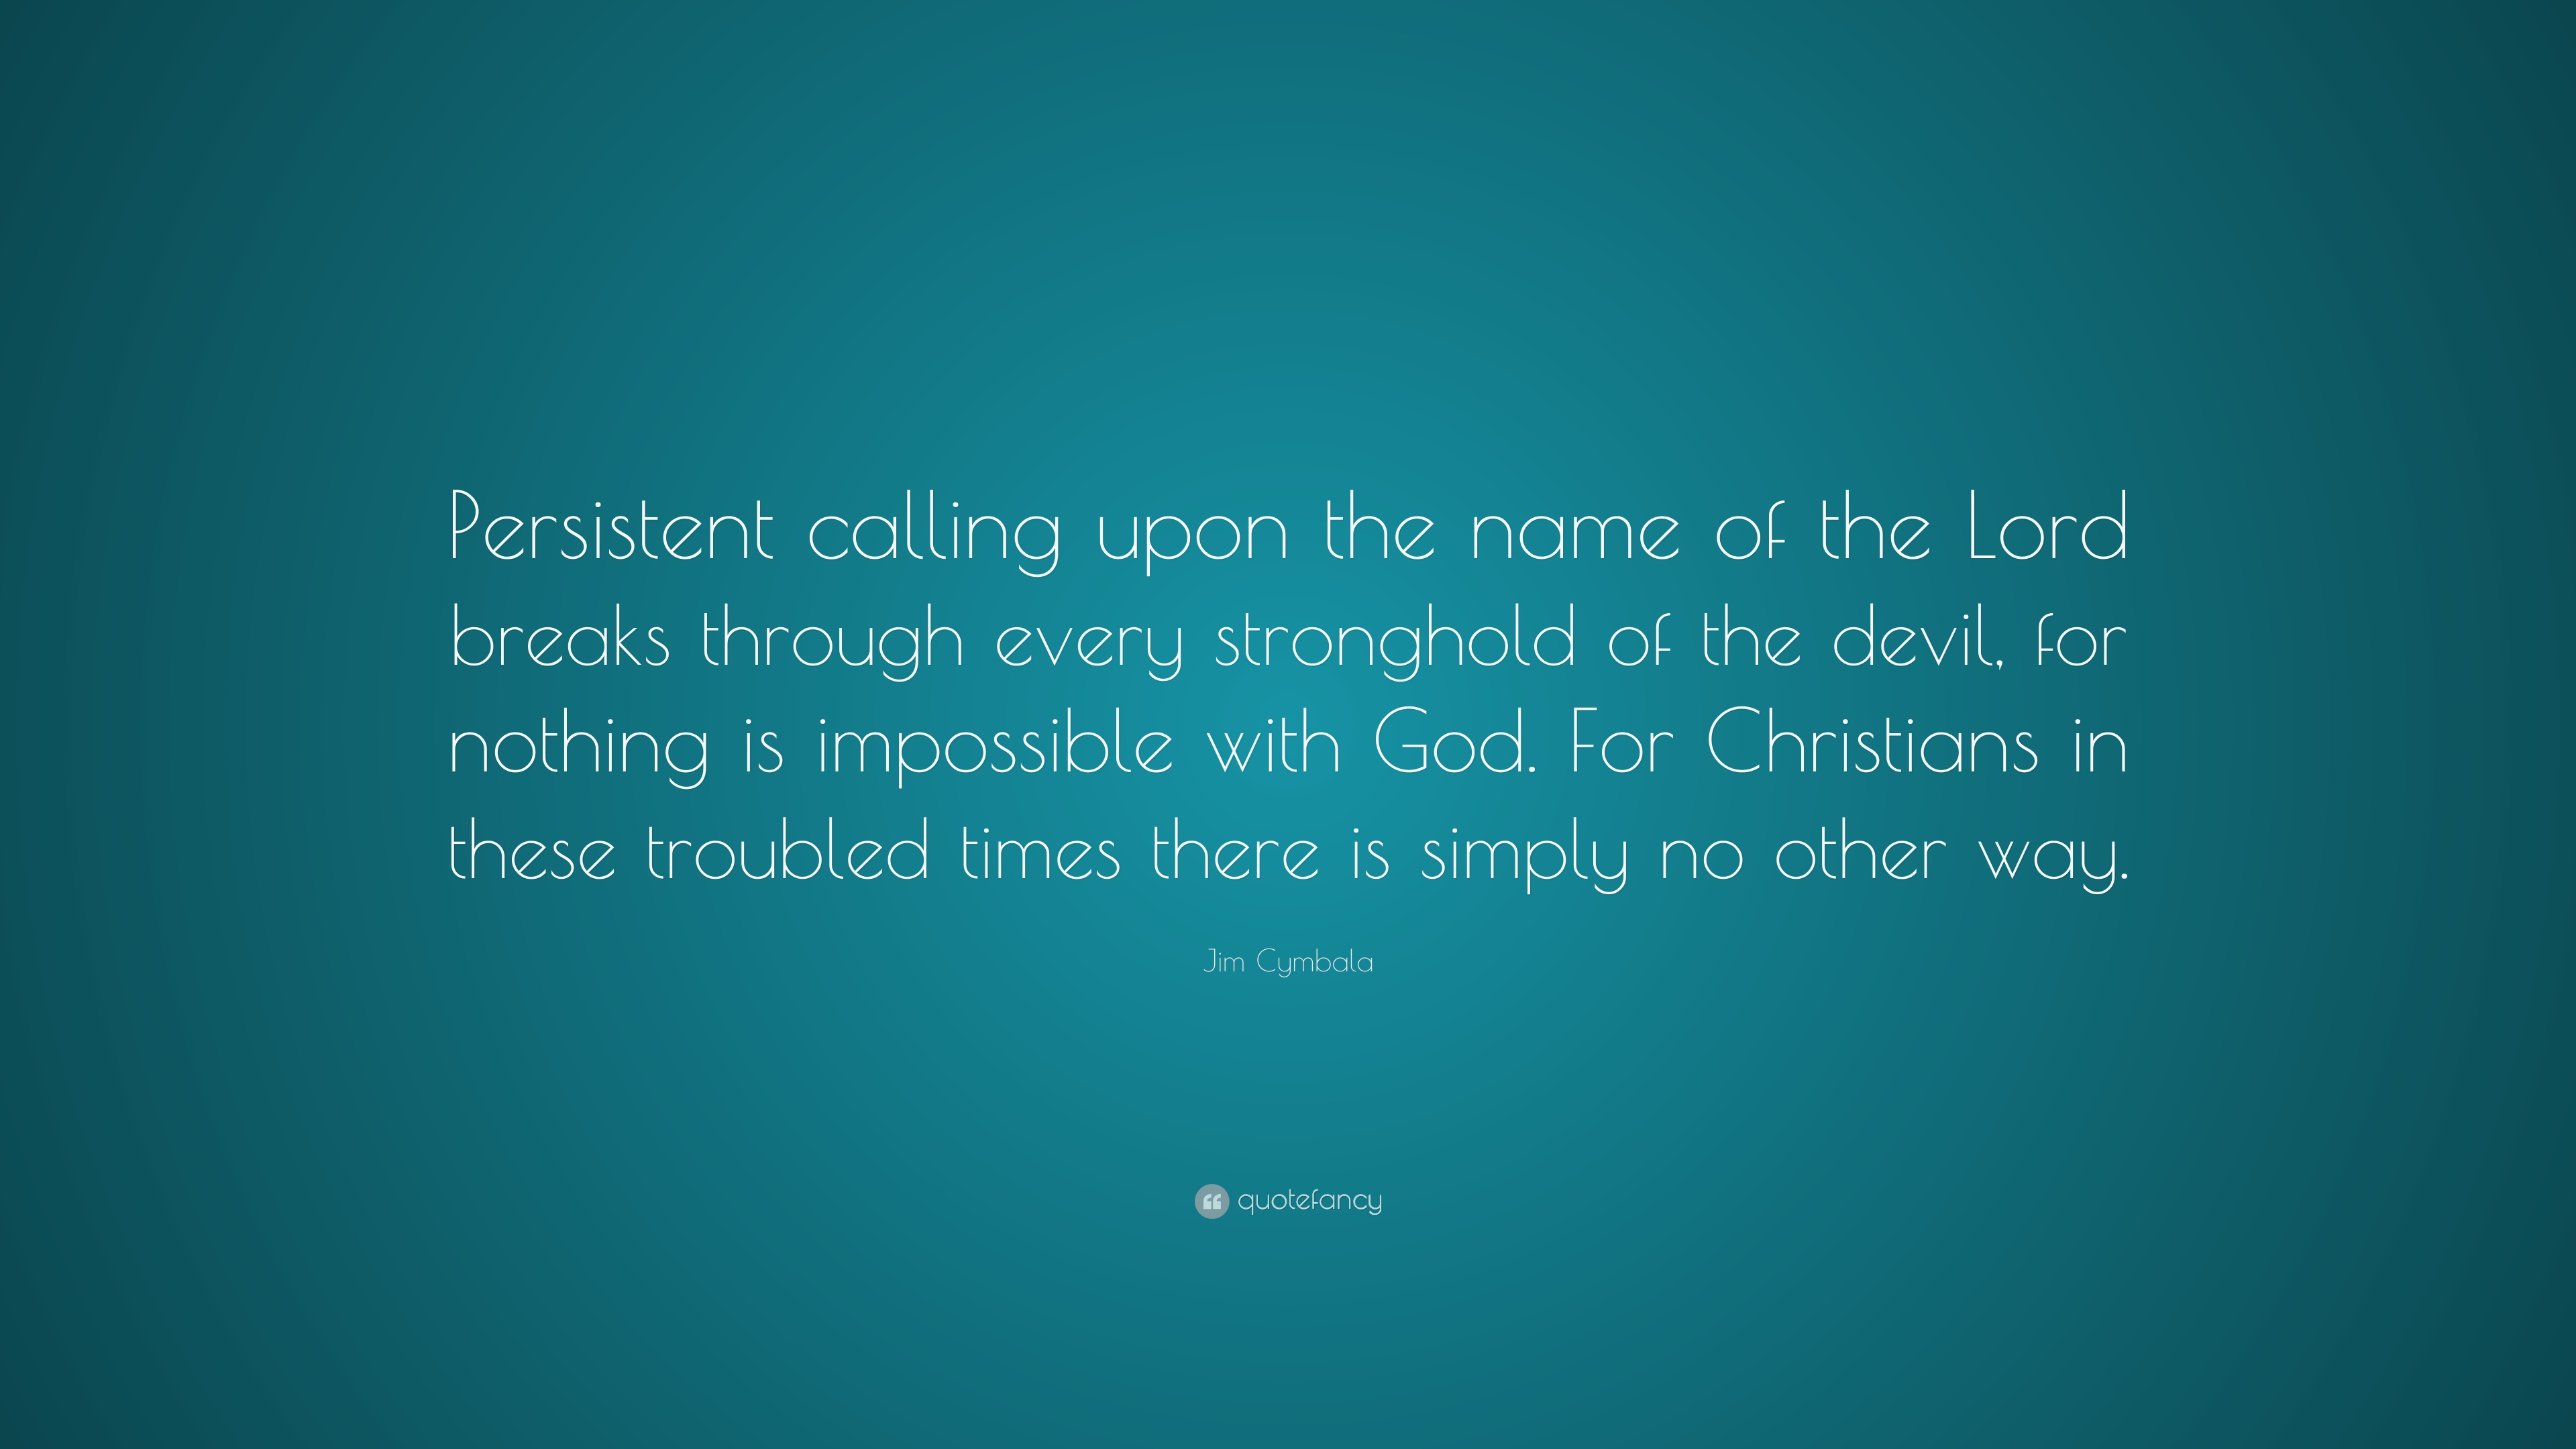 Great Wallpaper Lord Name - 1163517-Jim-Cymbala-Quote-Persistent-calling-upon-the-name-of-the-Lord  Pic_446796.jpg